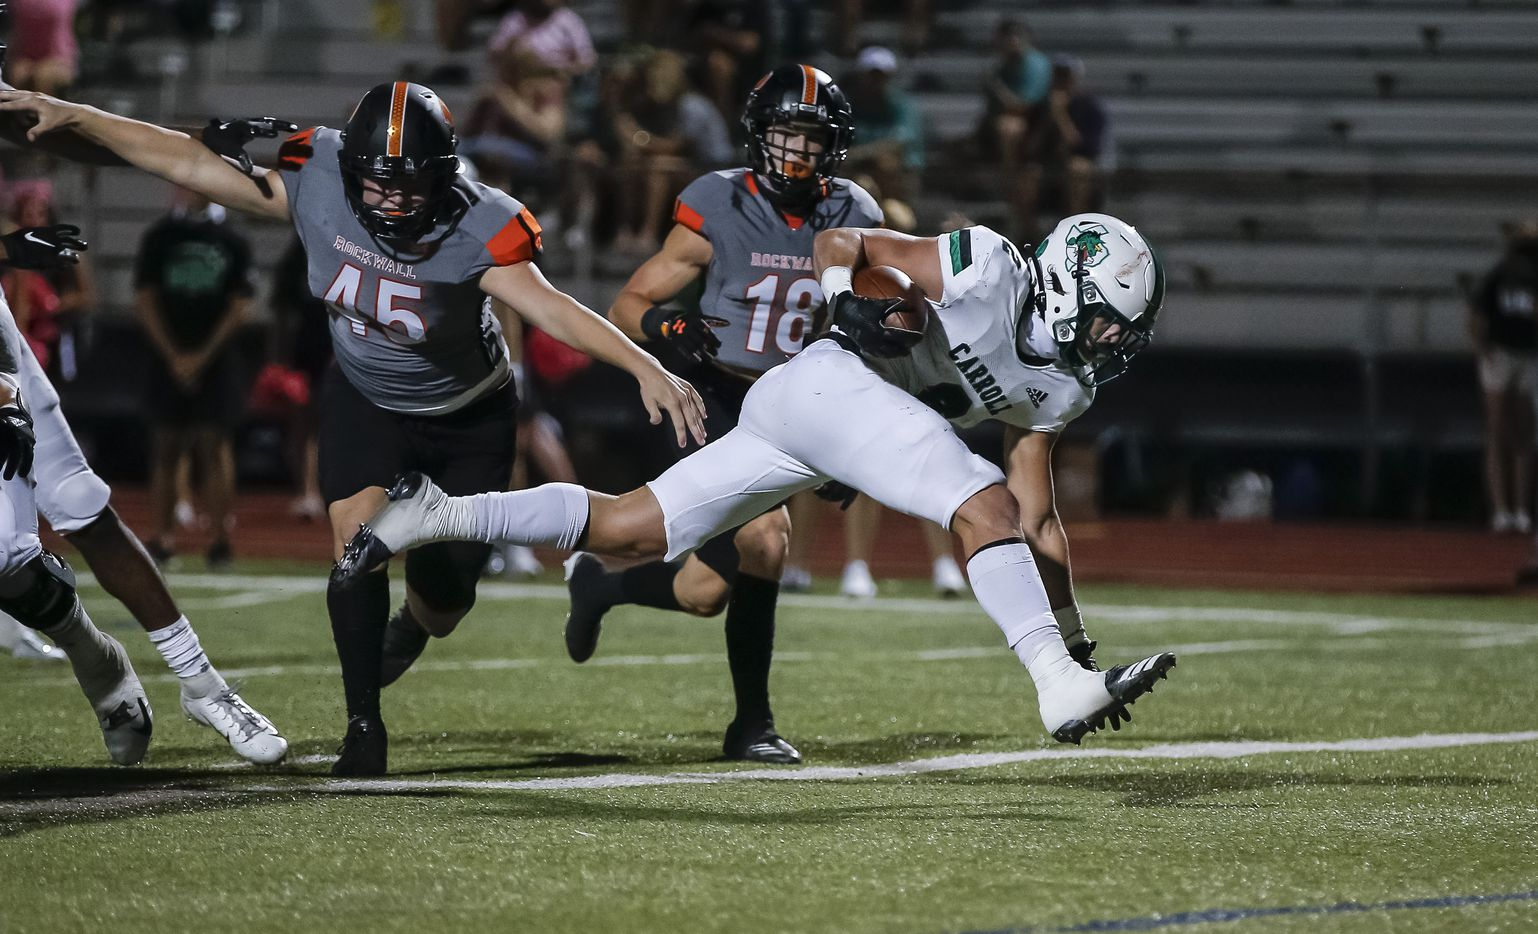 Southlake Carroll sophomore running back Owen Allen (2) scores a touchdown as Rockwall senior defensive end Caden Brown (45) and senior defensive back Kade Welcher (18) defend during the first half of a high school football game at Wilkerson-Sanders Stadium in Rockwall, Thursday, October 8, 2020. (Brandon Wade/Special Contributor)